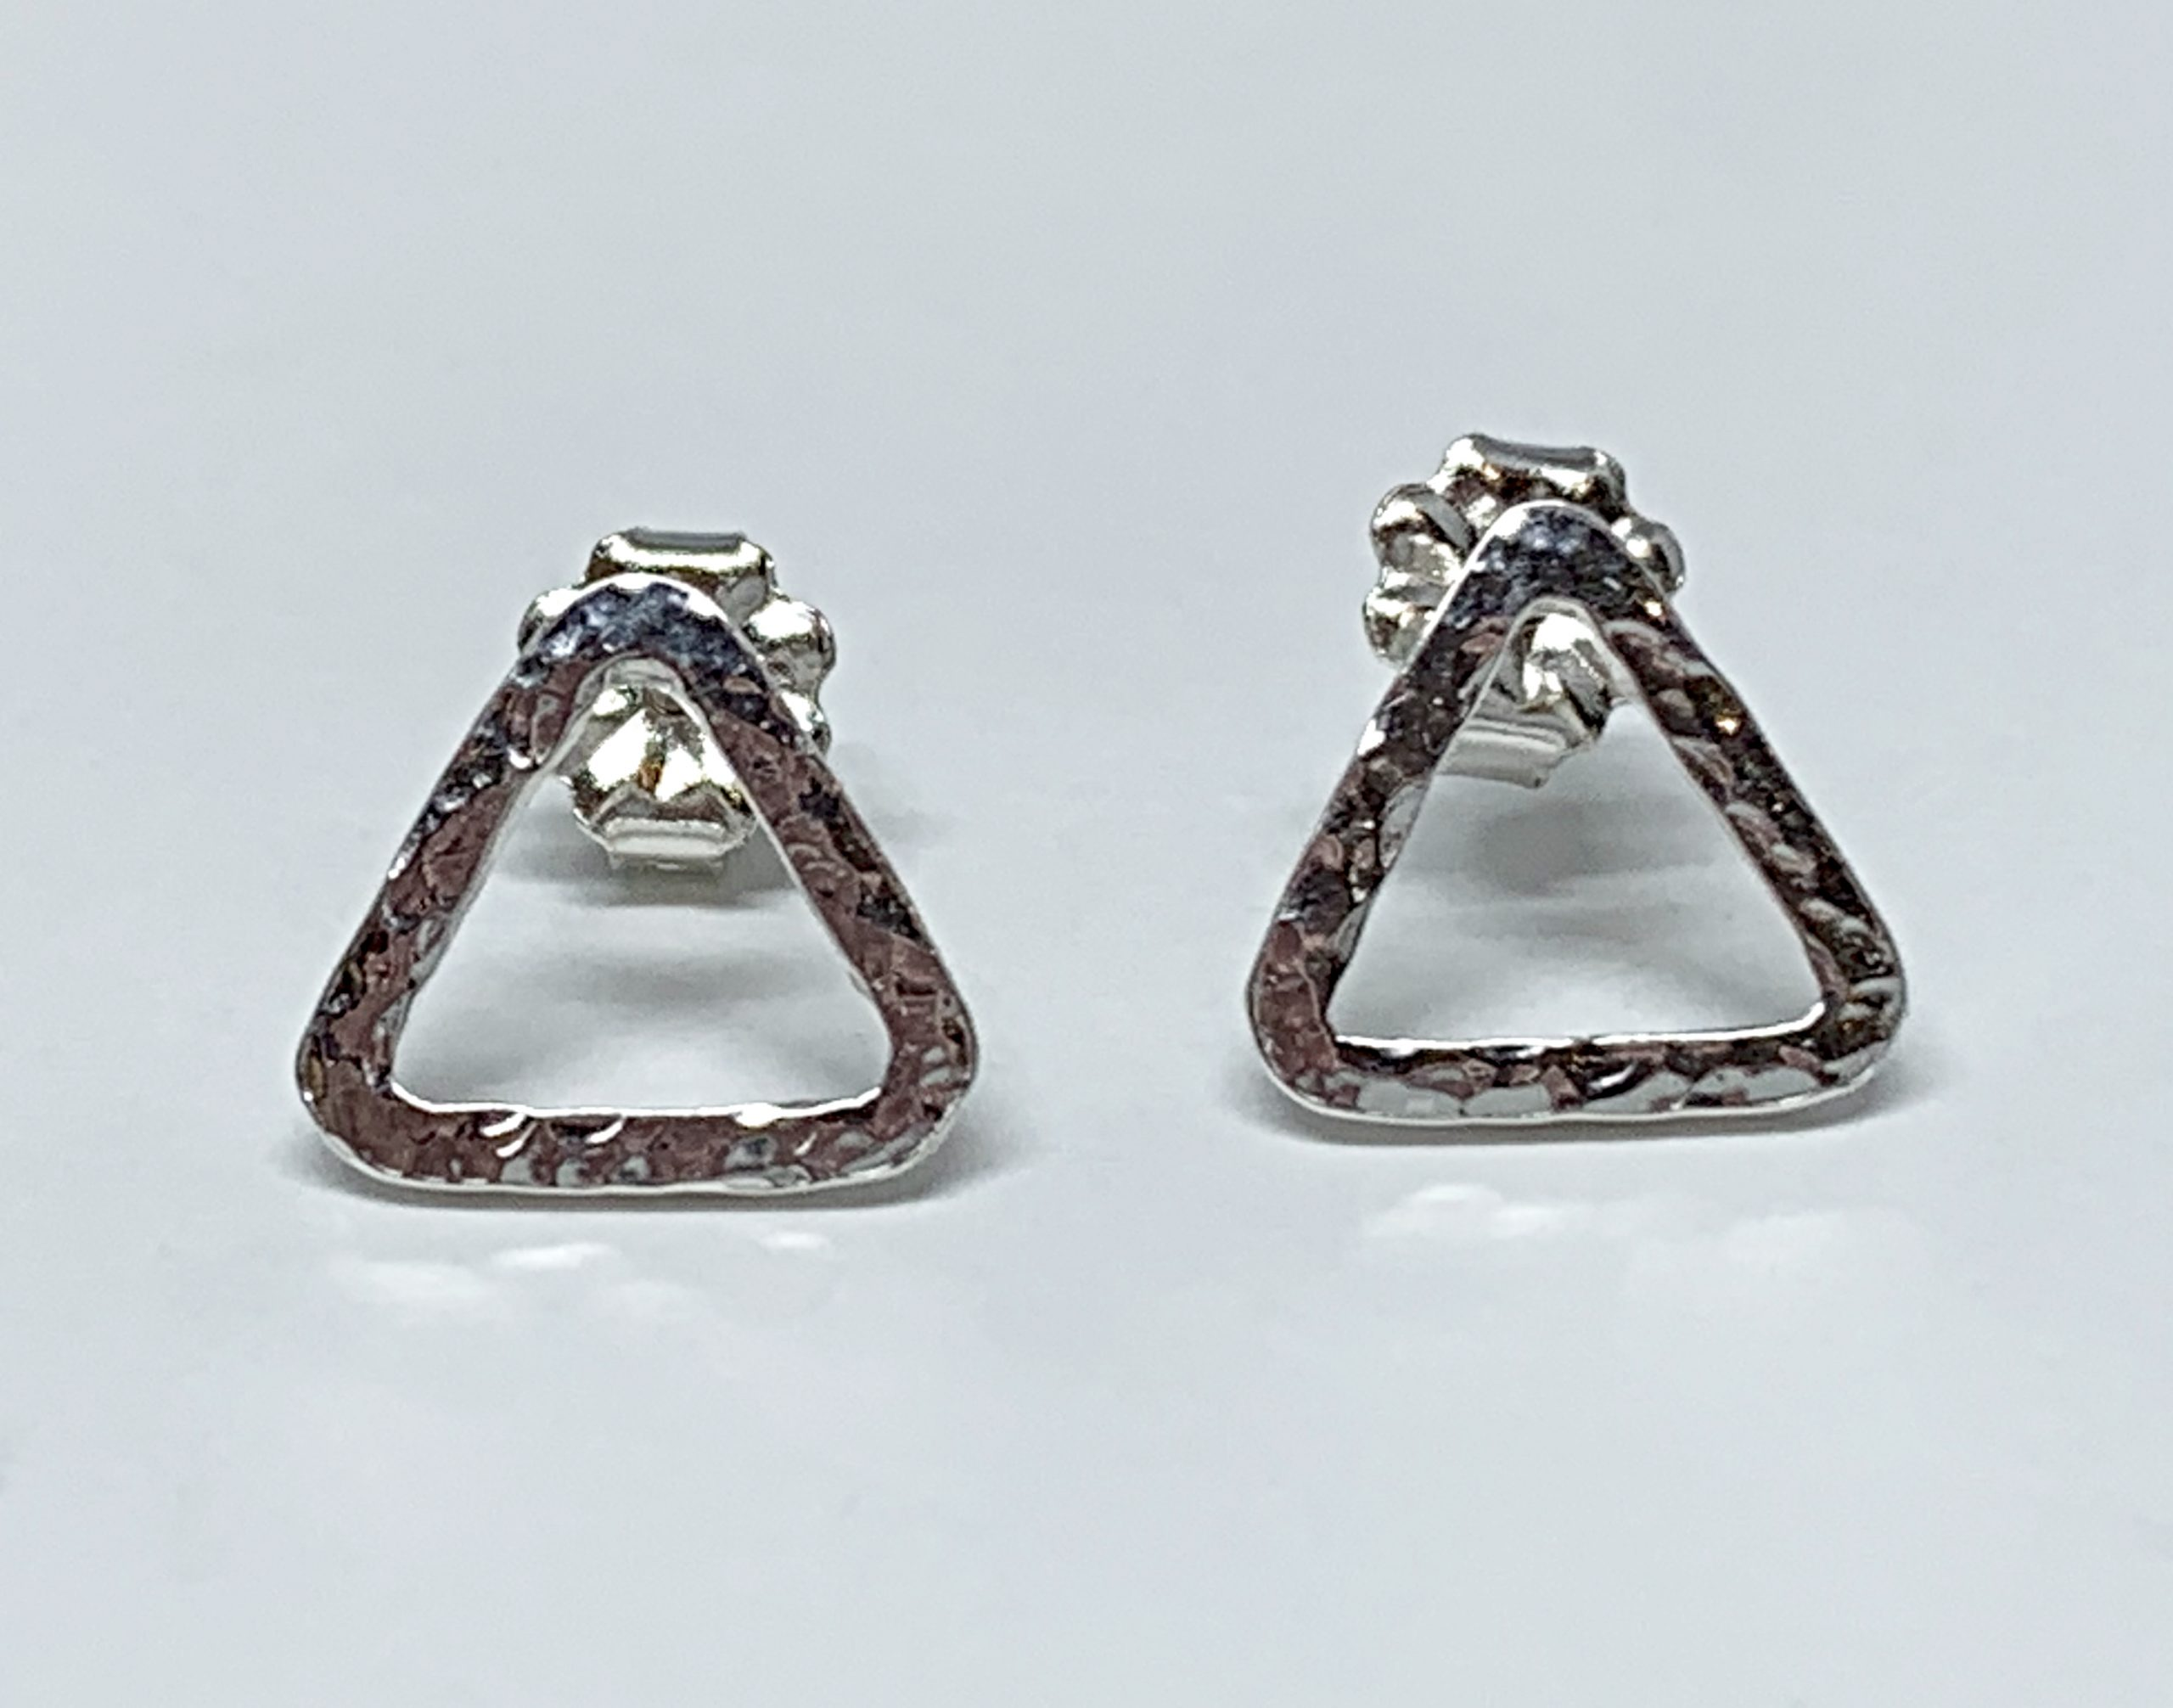 Sterling silver earrings by A&R Jewellery | Effusion Art Gallery + Cast Glass Studio, Invermere BC